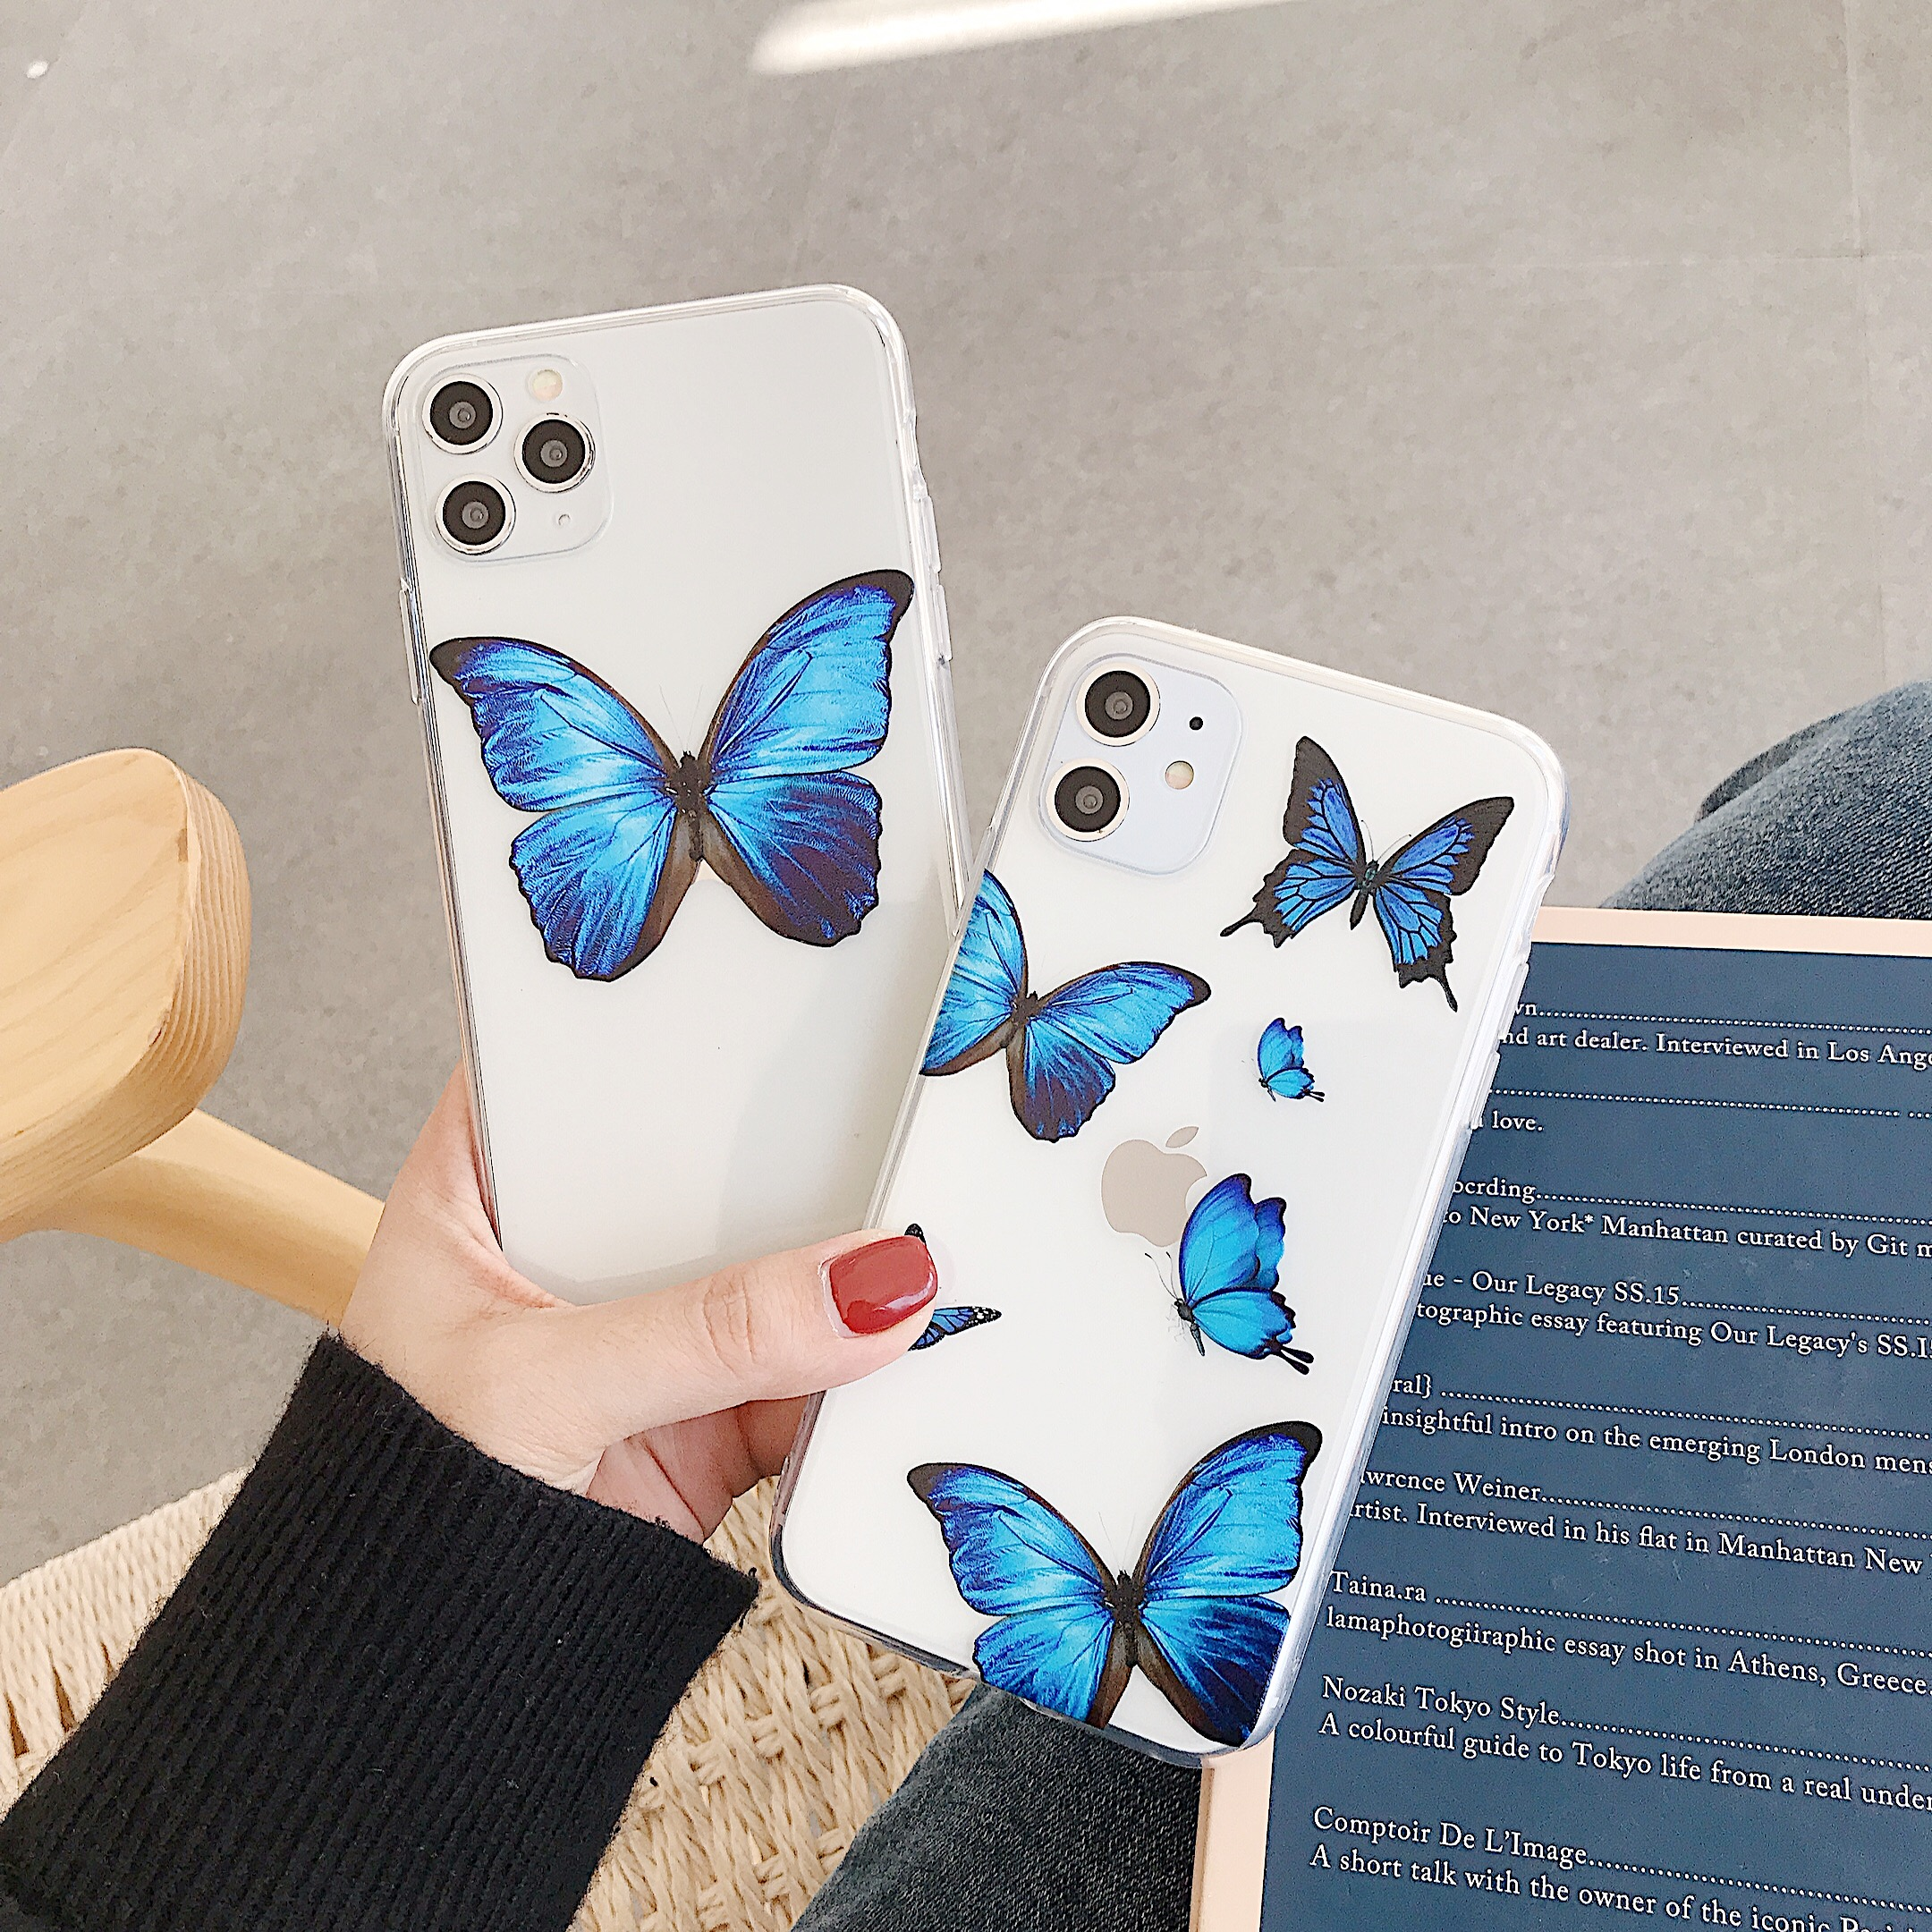 Lovebay Cute Transparent Gutterfly Phone Case For IPhone 11 Pro Max X XR XS 6 6s 7 8 Plus Cartoon Soft TPU Silicone Back Cover